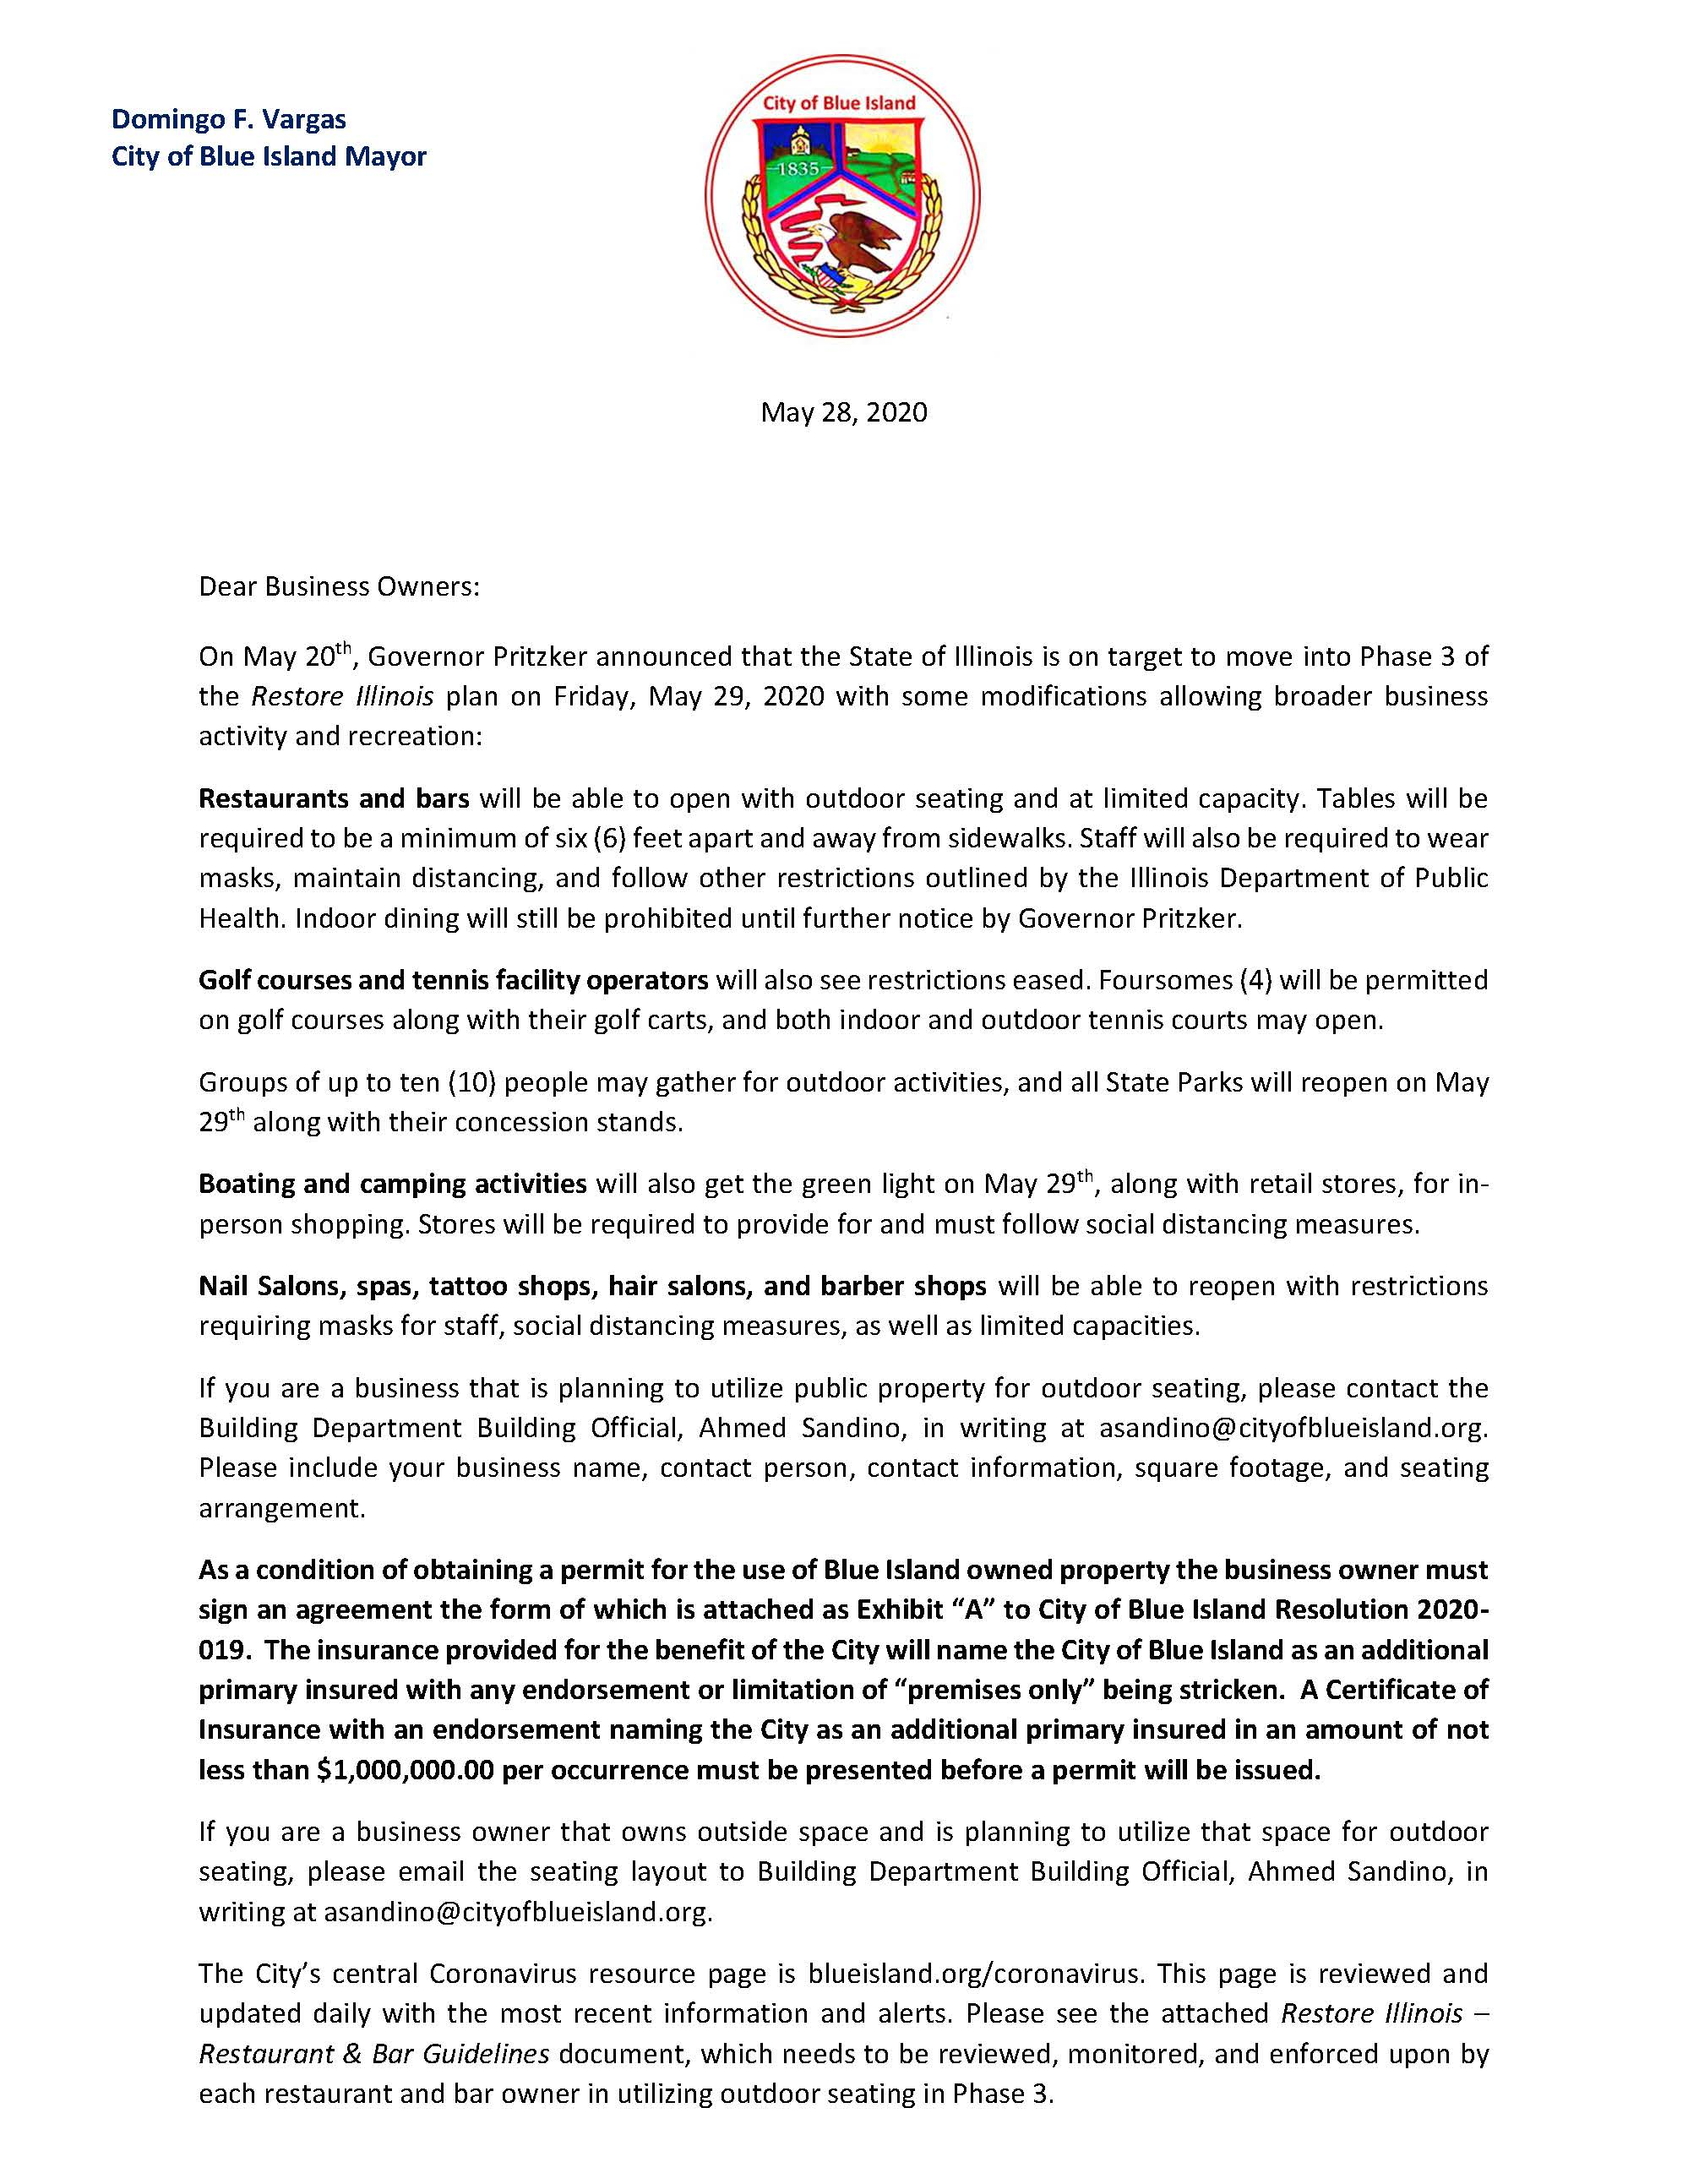 letter to businesses about reopeing in phase 3